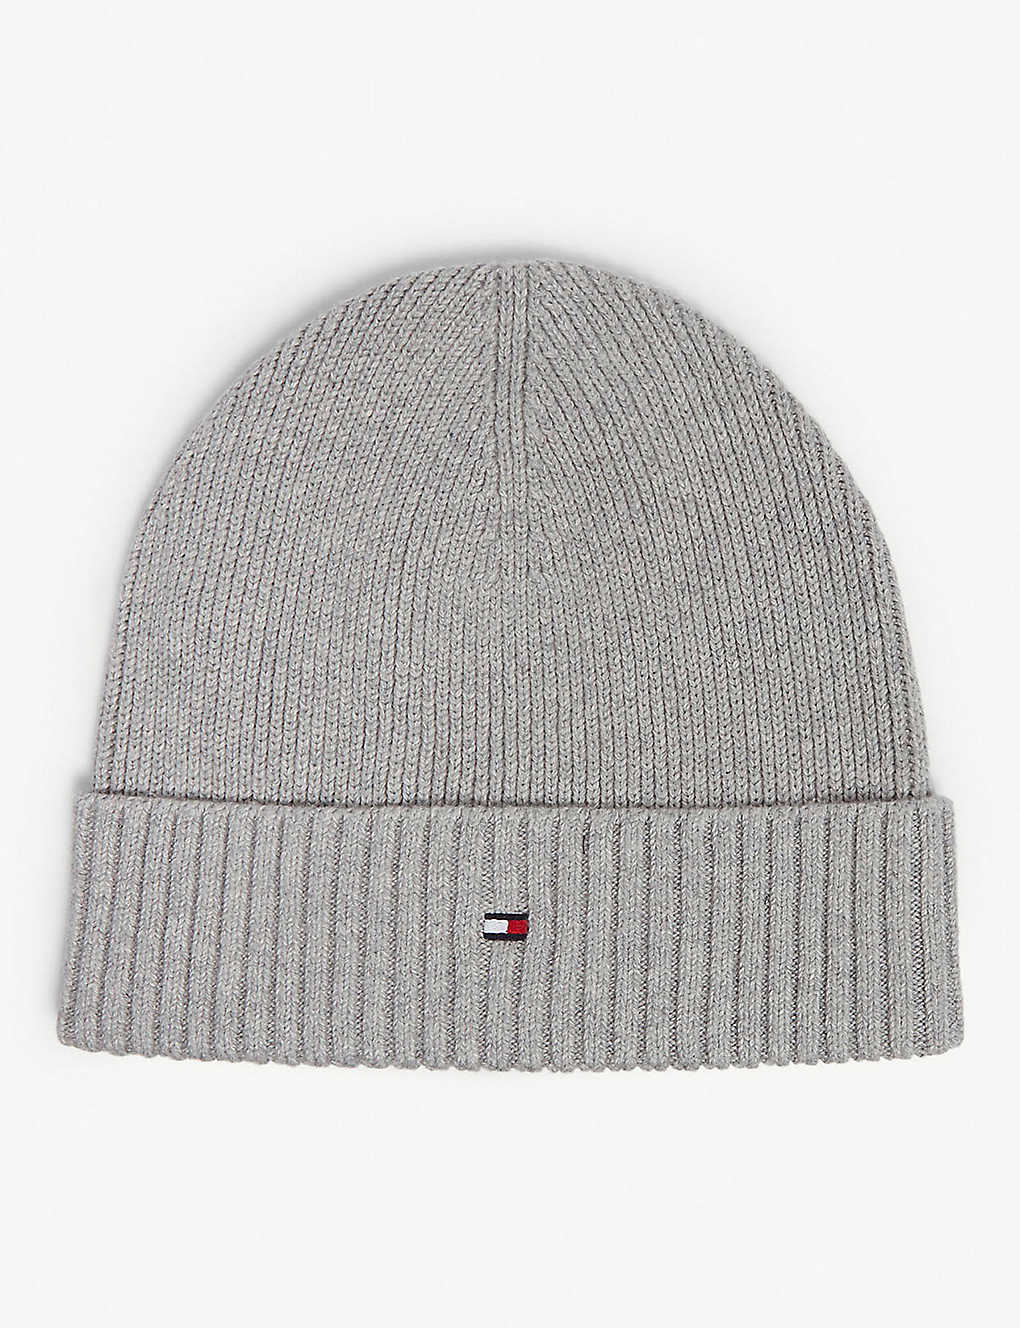 e8f900c5b96 TOMMY HILFIGER - Pima cotton and cashmere beanie